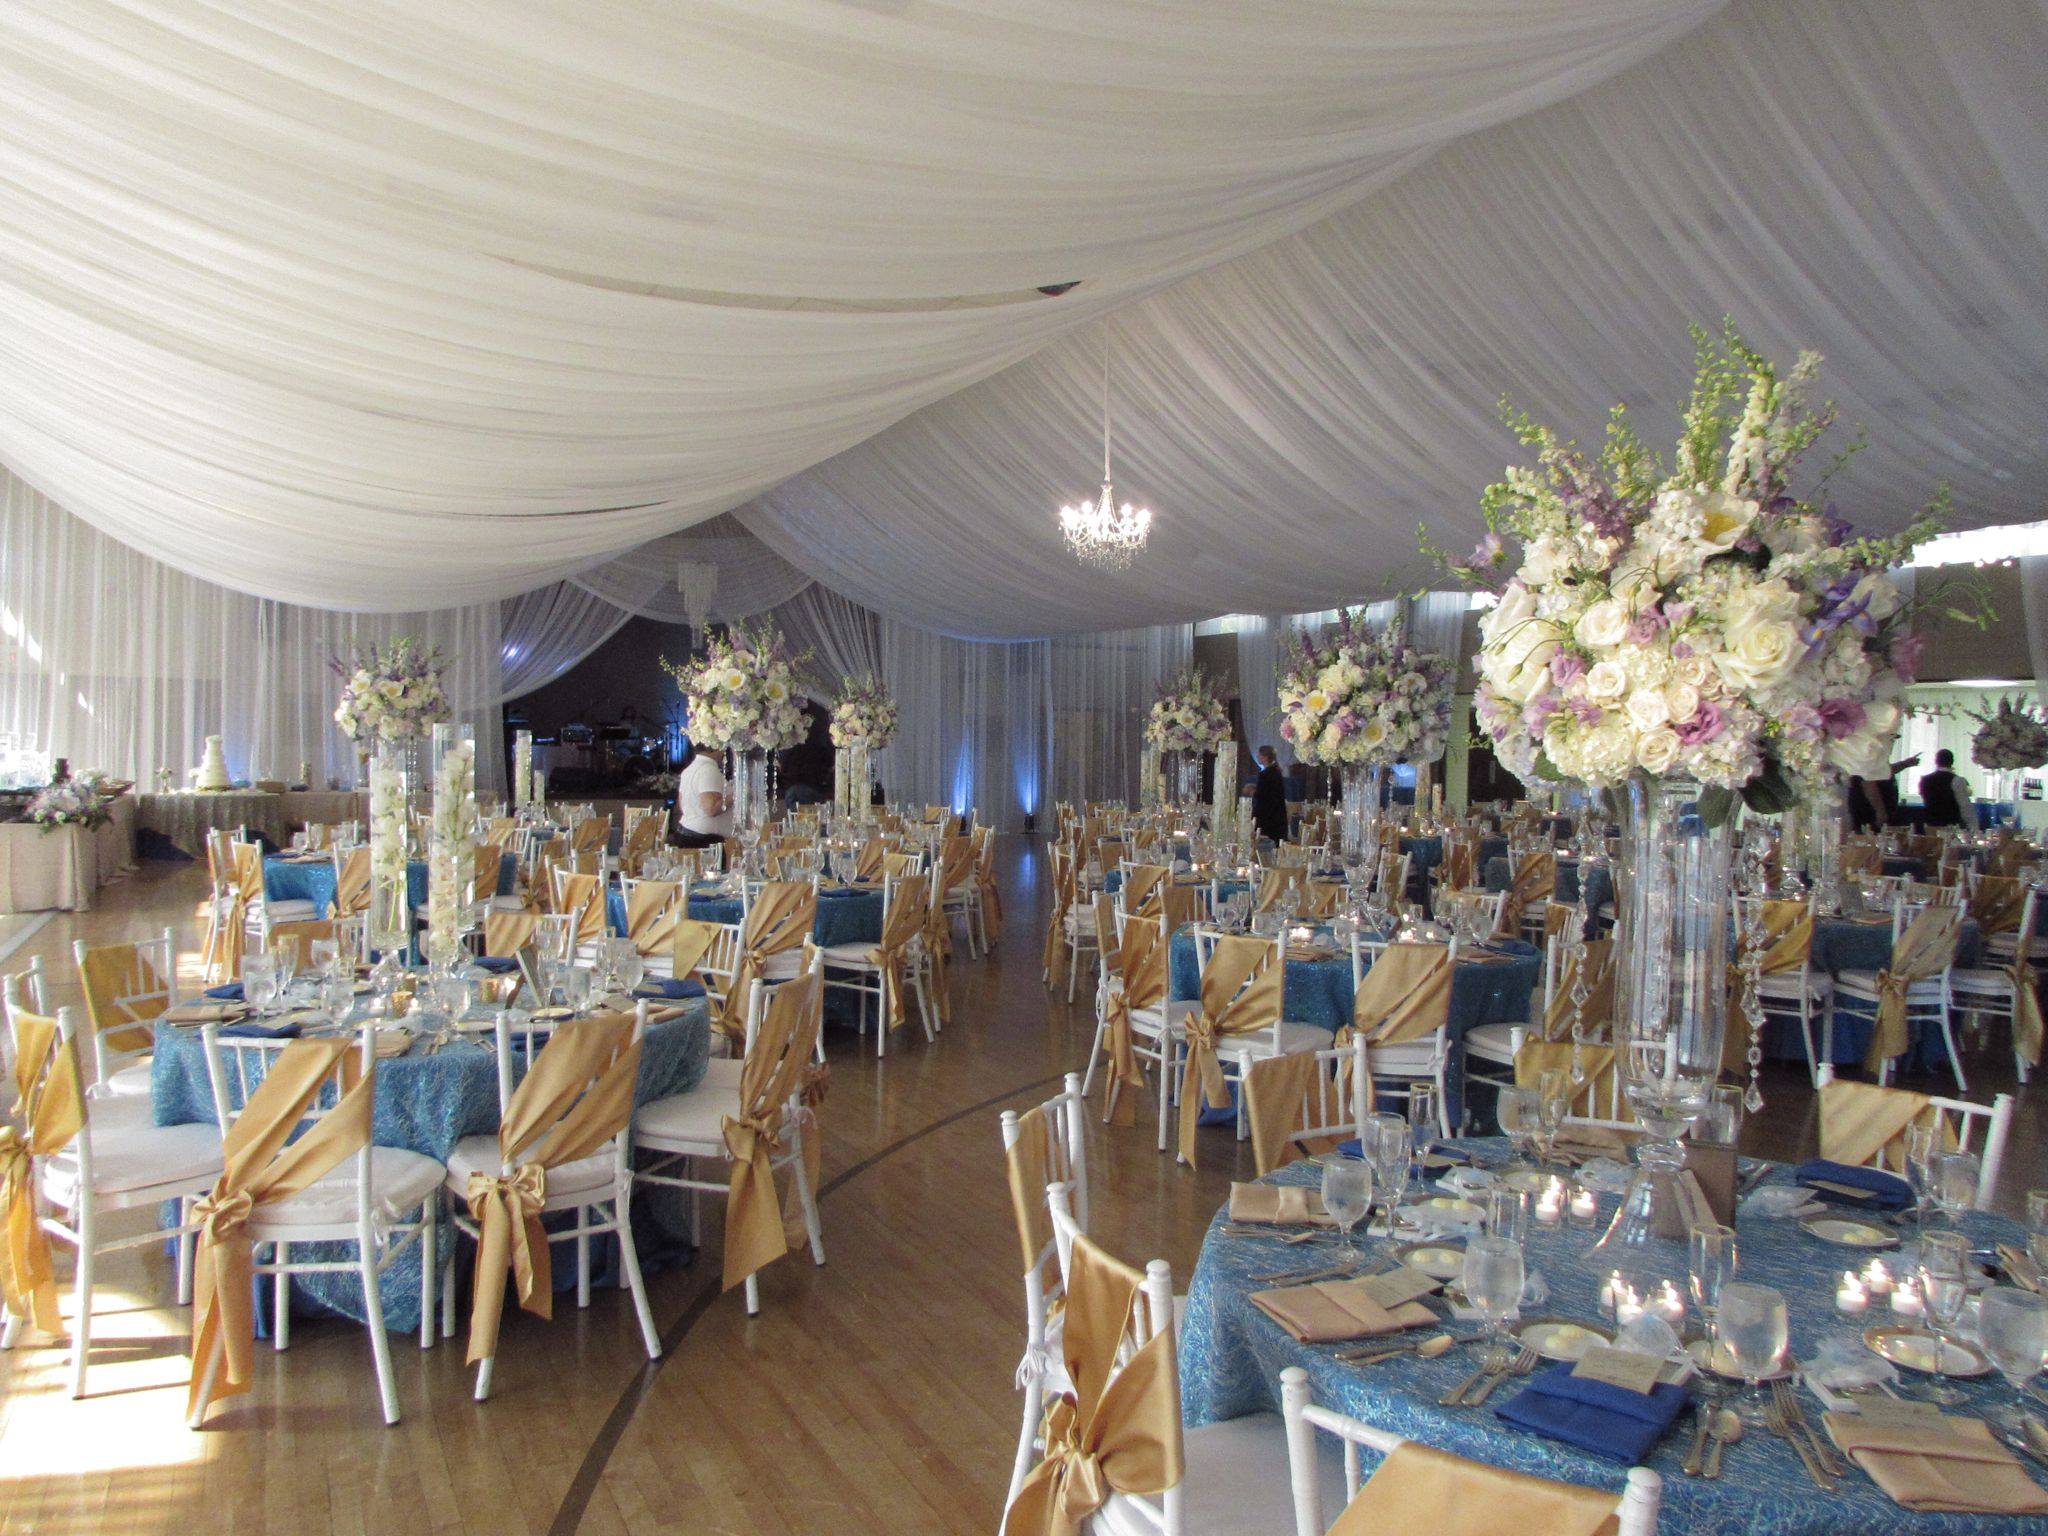 Event Design By Kathy Piech Lukas Of Your Dream Day Linens Prime Time